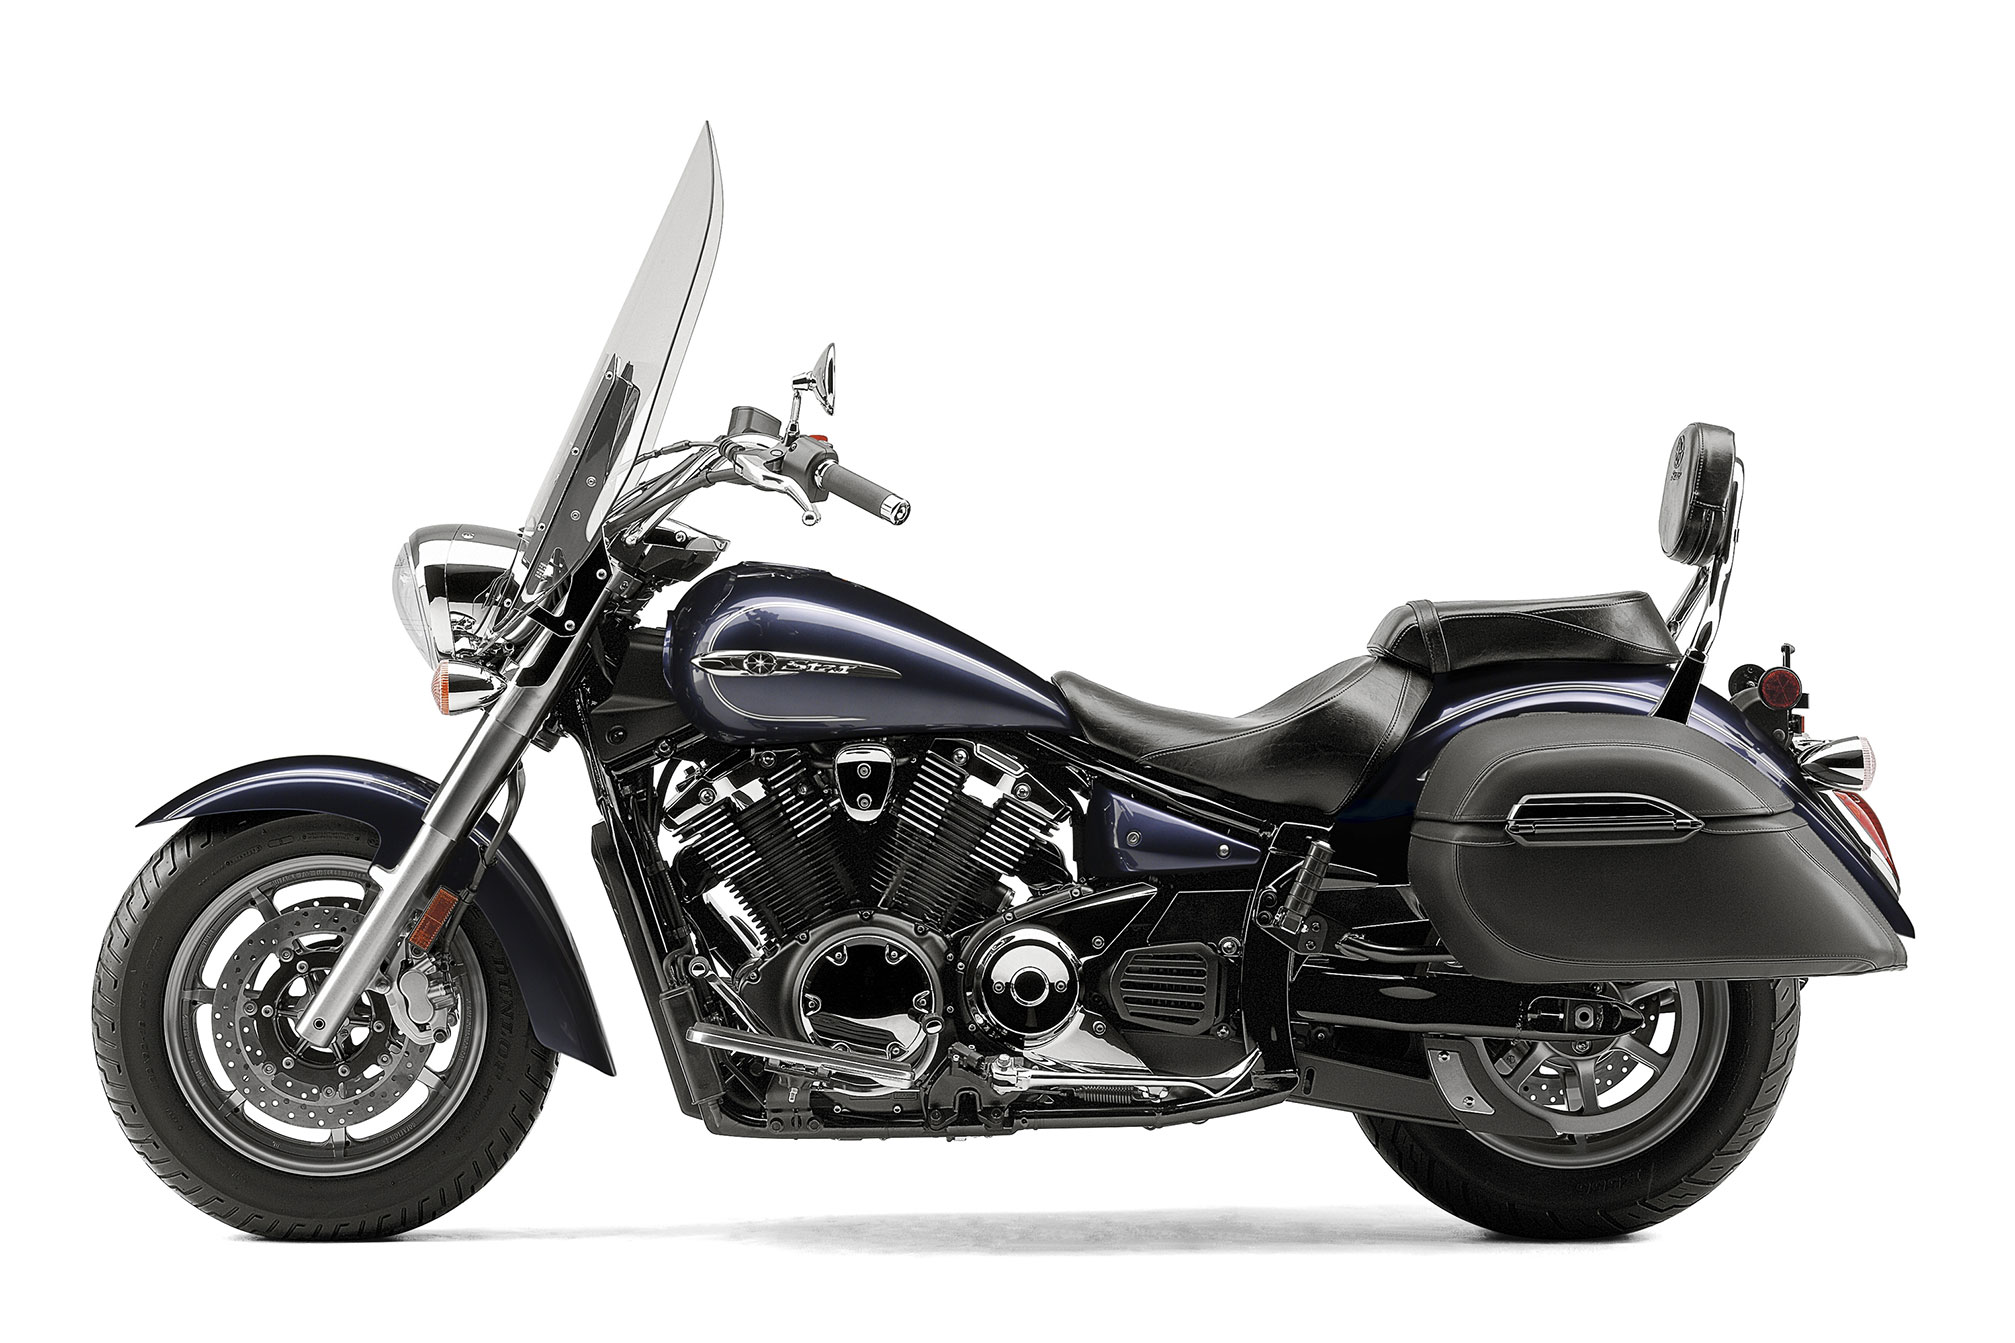 2015 Yamaha V-Star 1300 Tourer Review